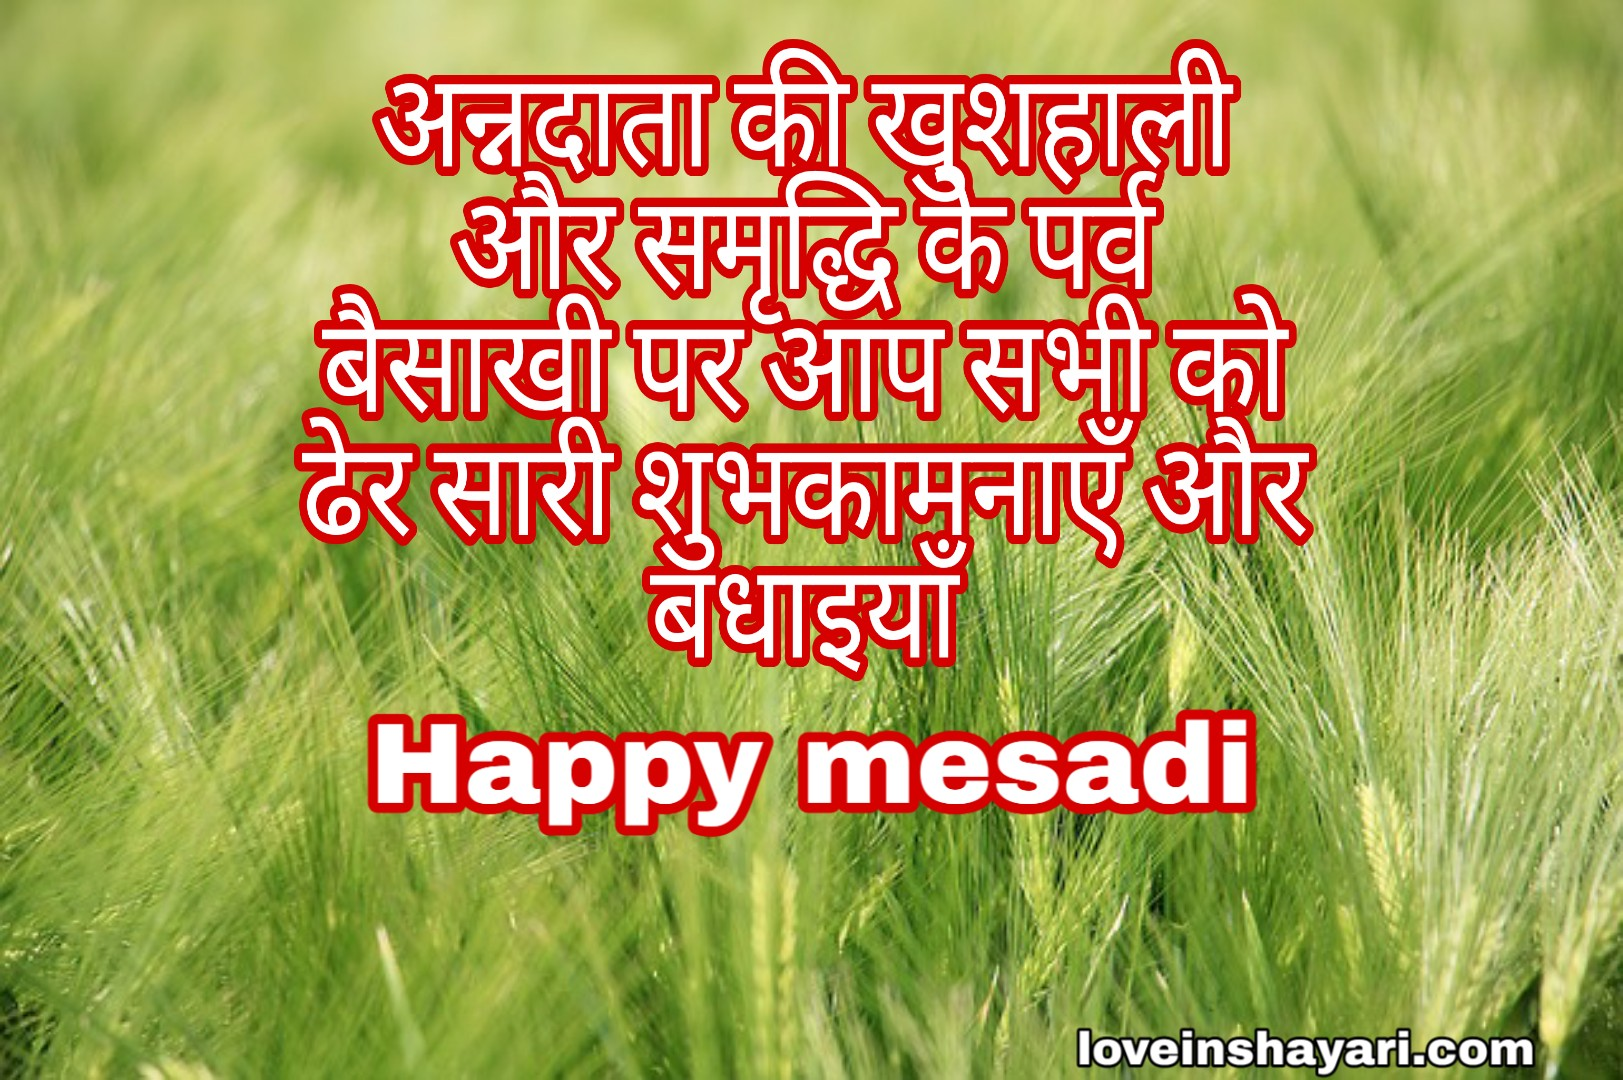 Photo of Mesadi vaisakhadi wishes shayari images images sms